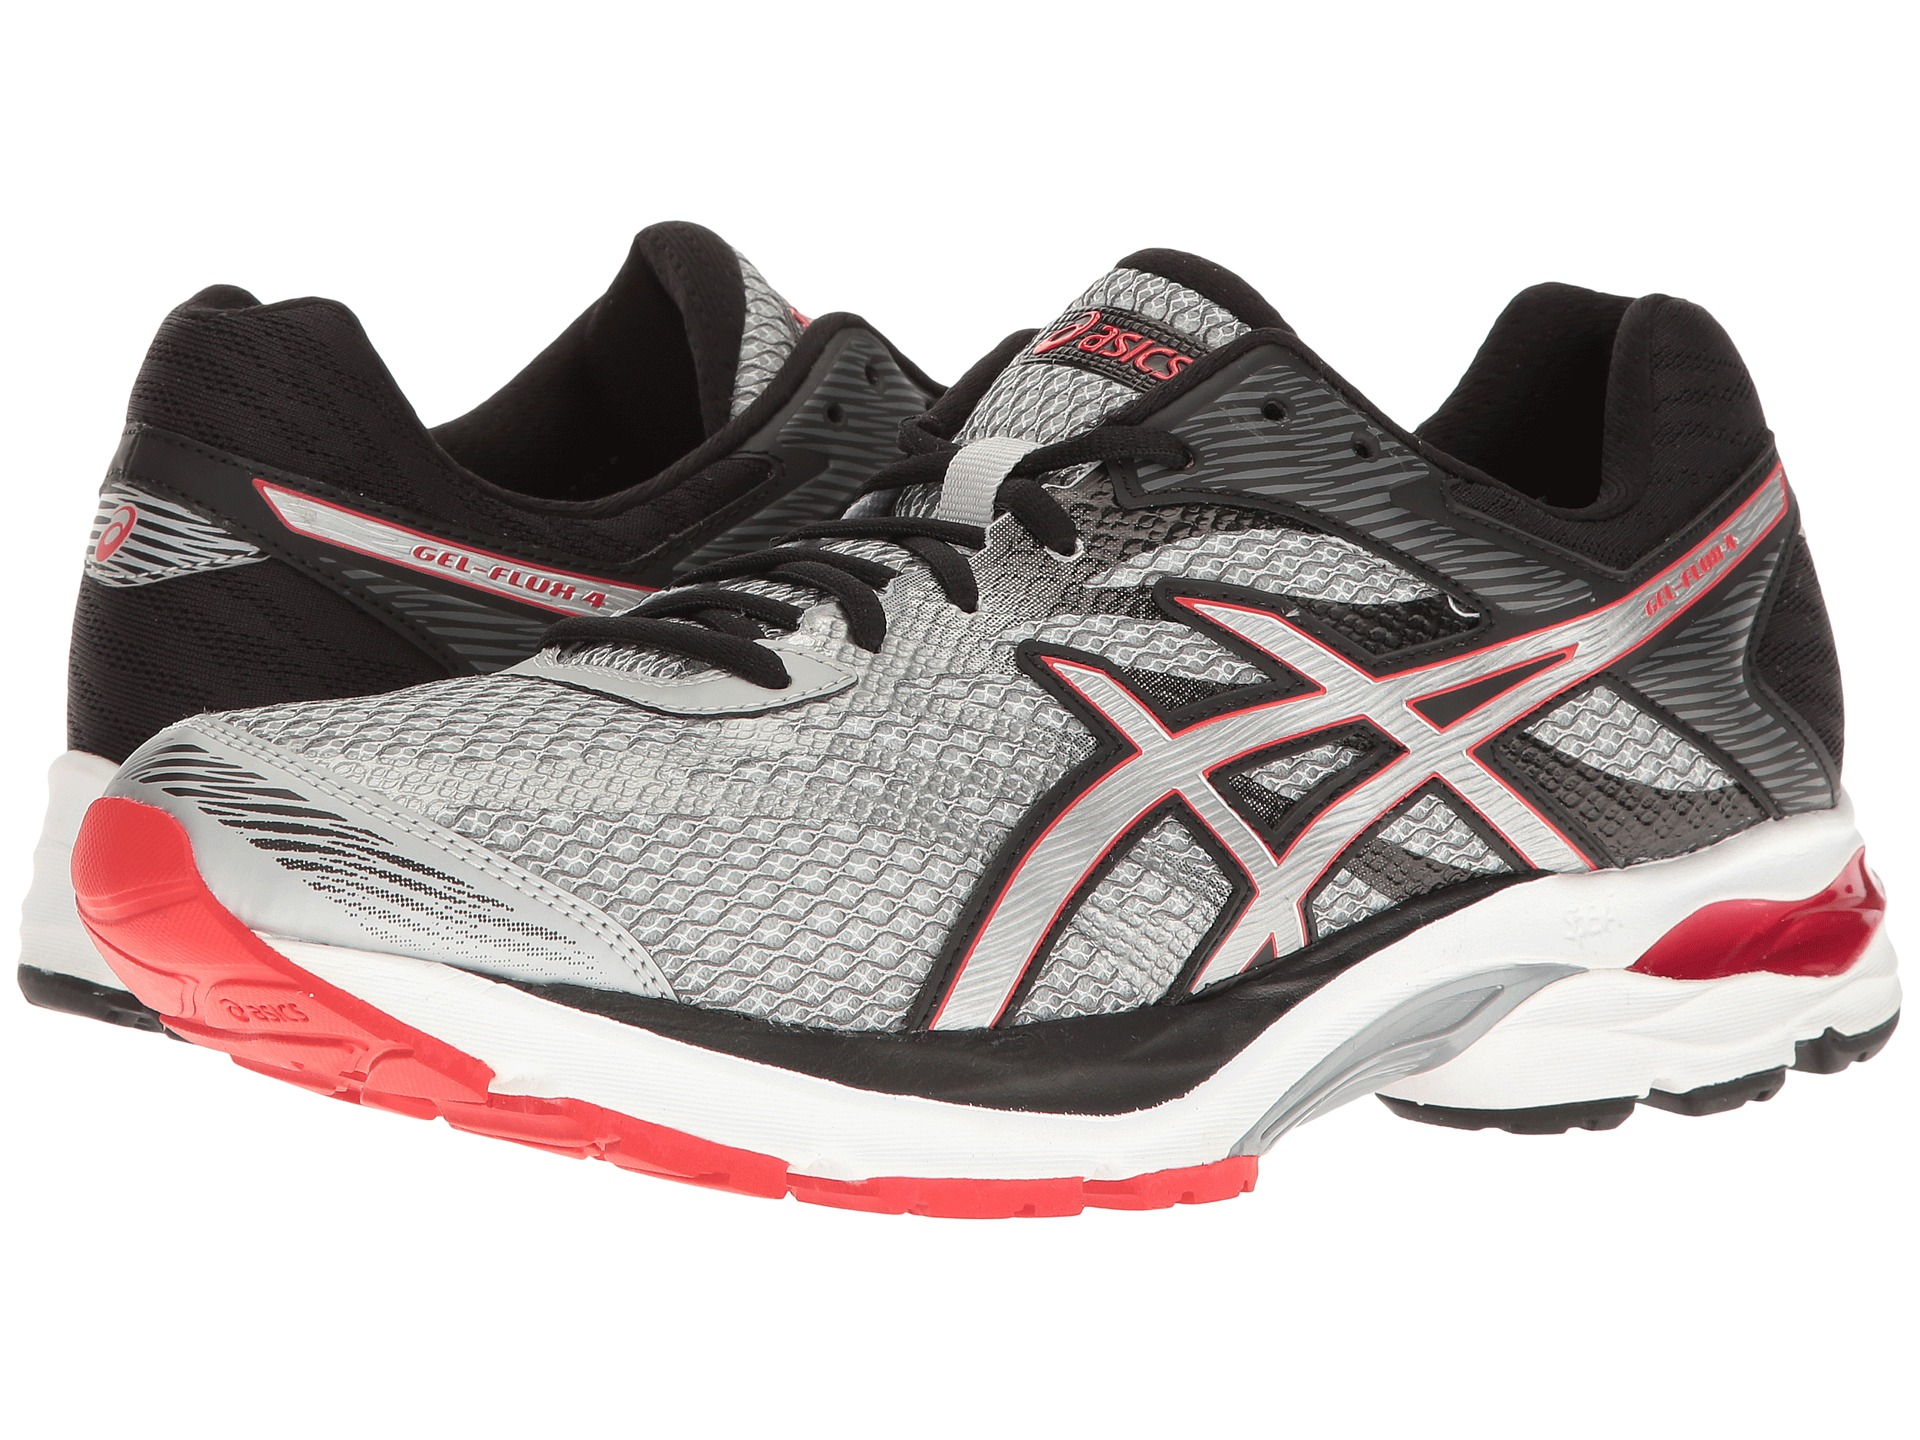 asics gel flux 4 glacier grey silver vermillion zappos. Black Bedroom Furniture Sets. Home Design Ideas